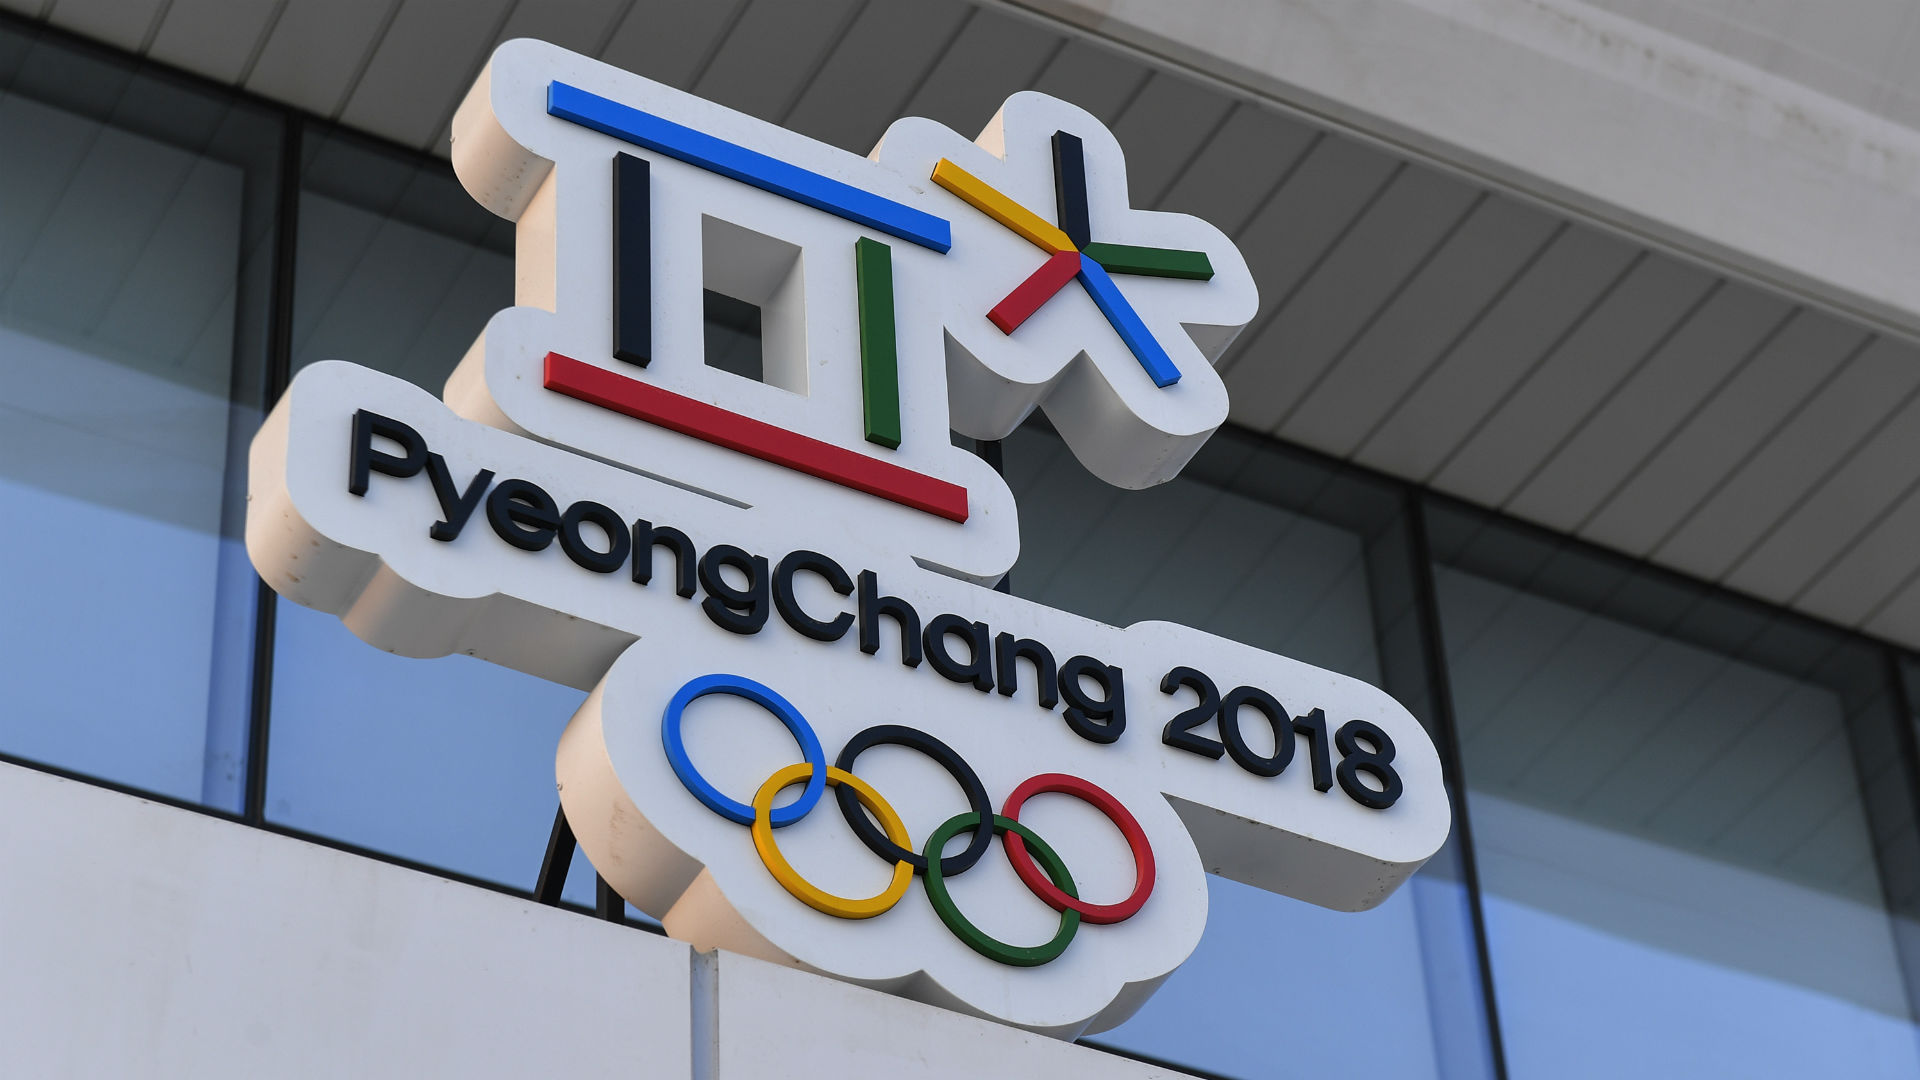 Hackers tried to steal Winter Olympics information